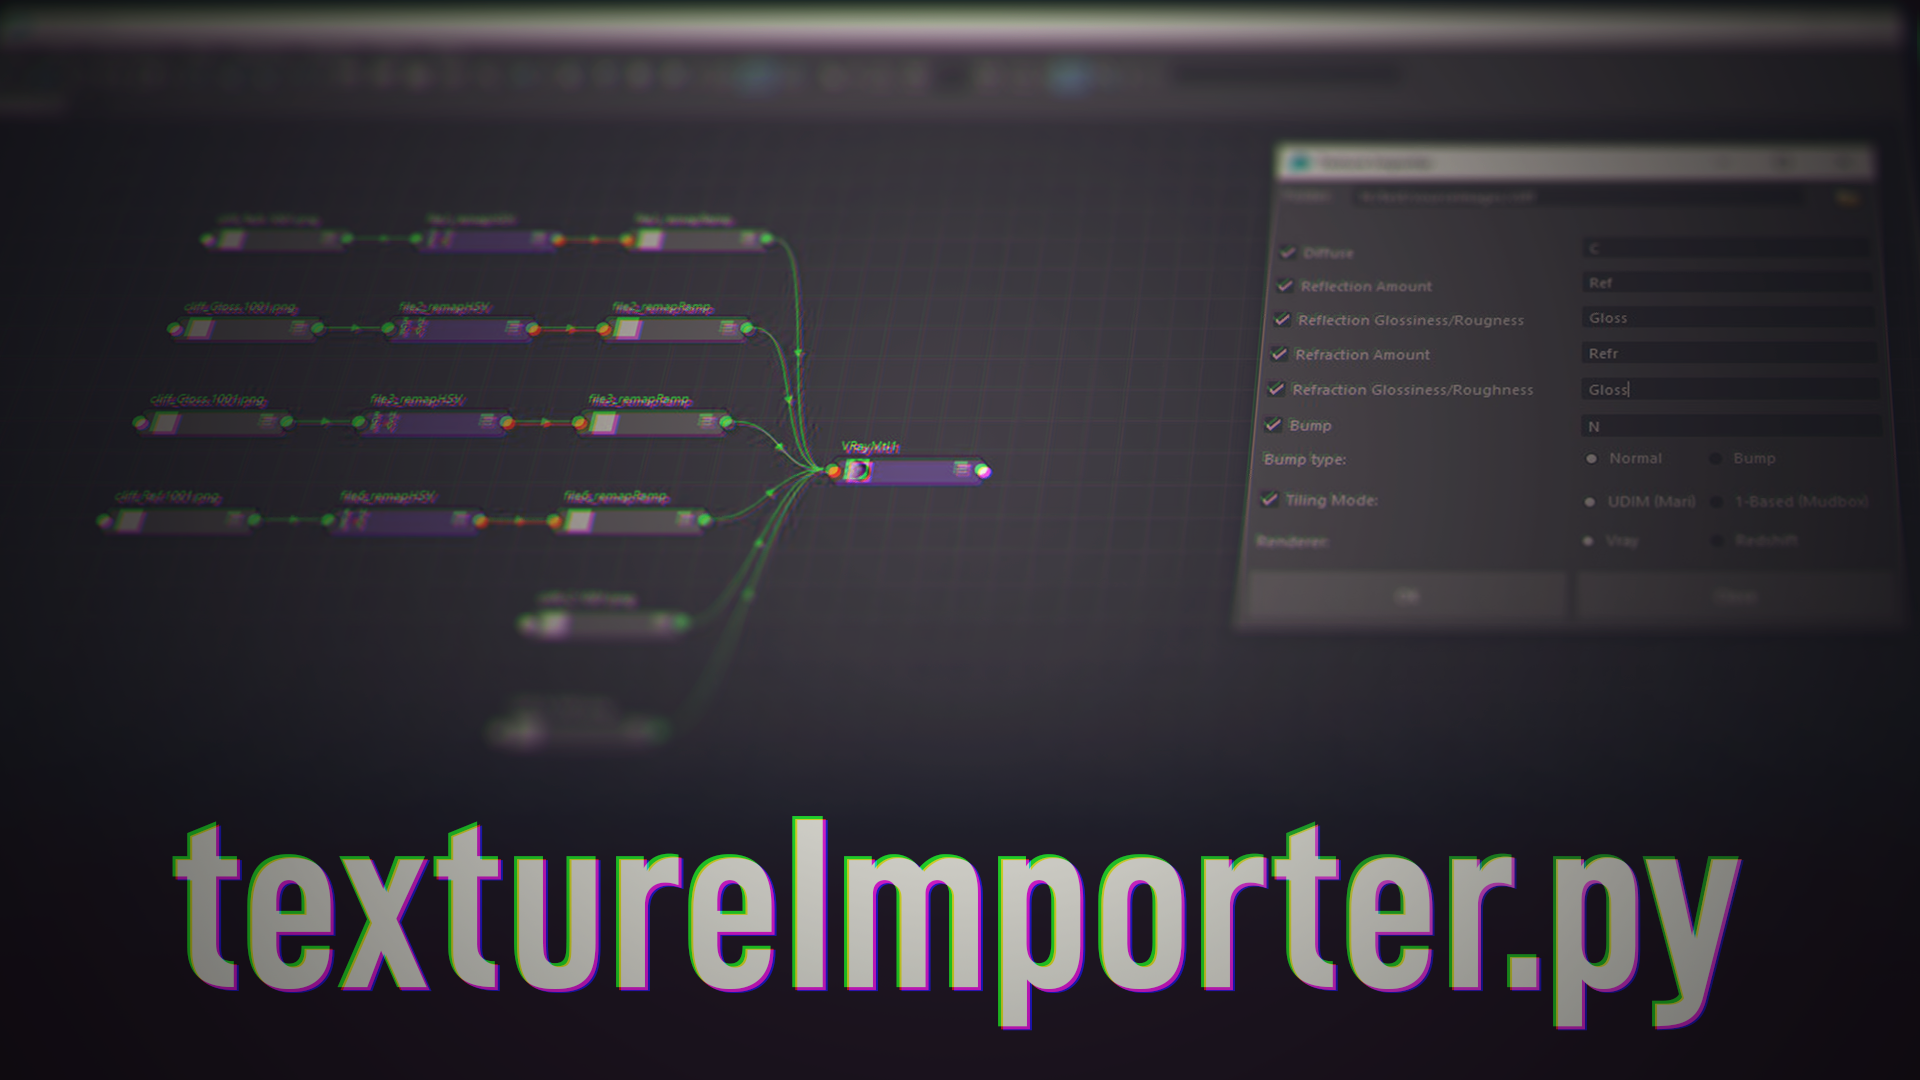 A Maya script to automatically import file textures from a folder, set their parameters, and connect them to a shader.